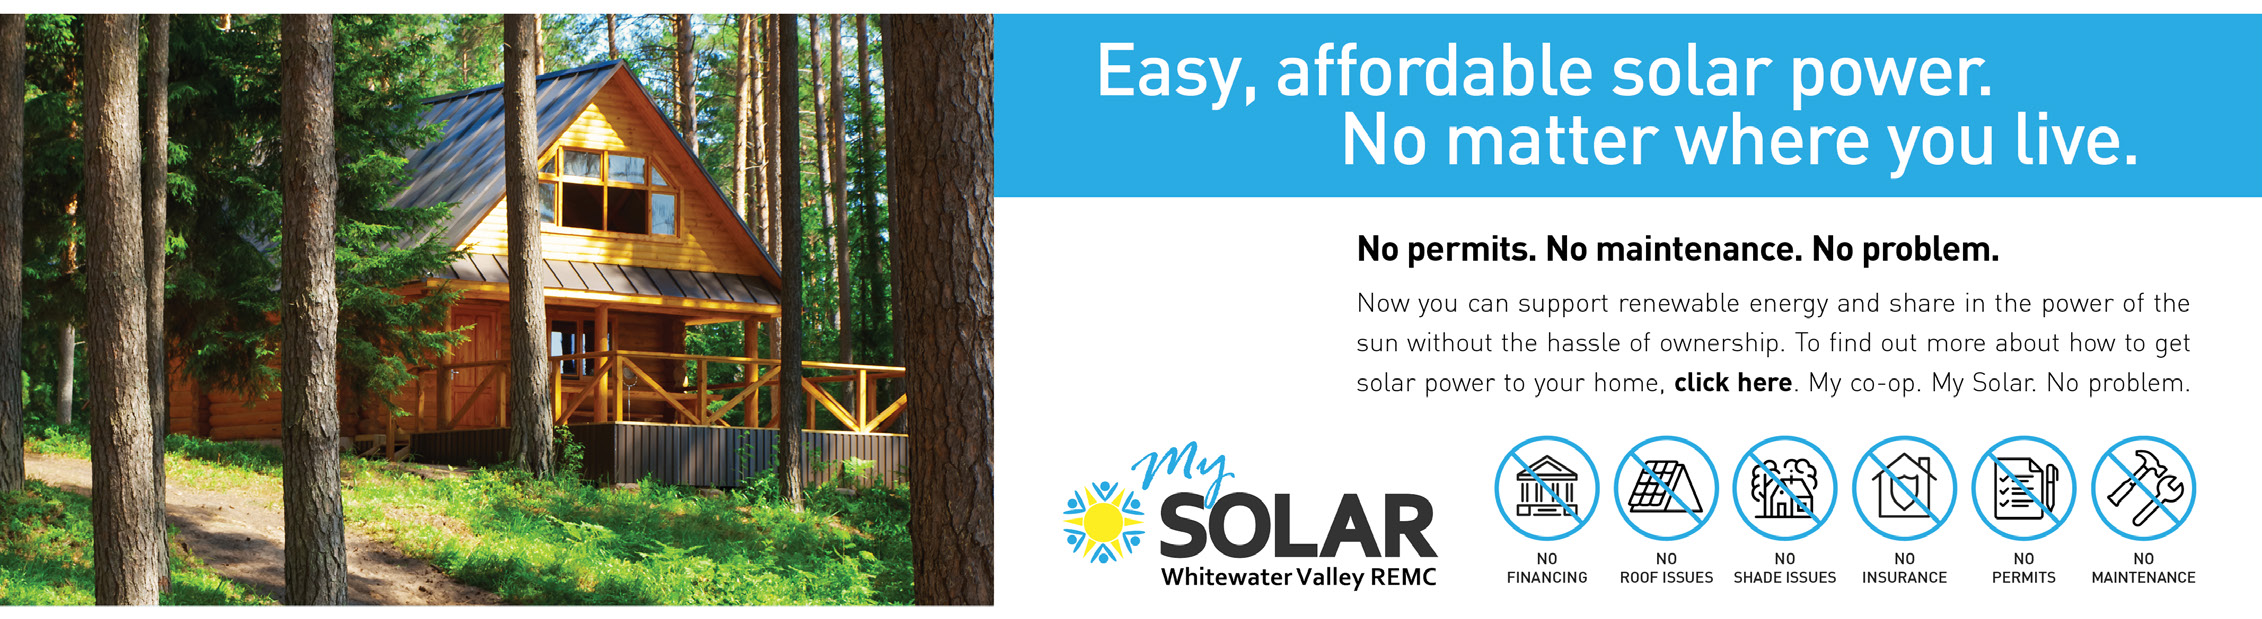 Easy, affordable solar power. No matter where you live.